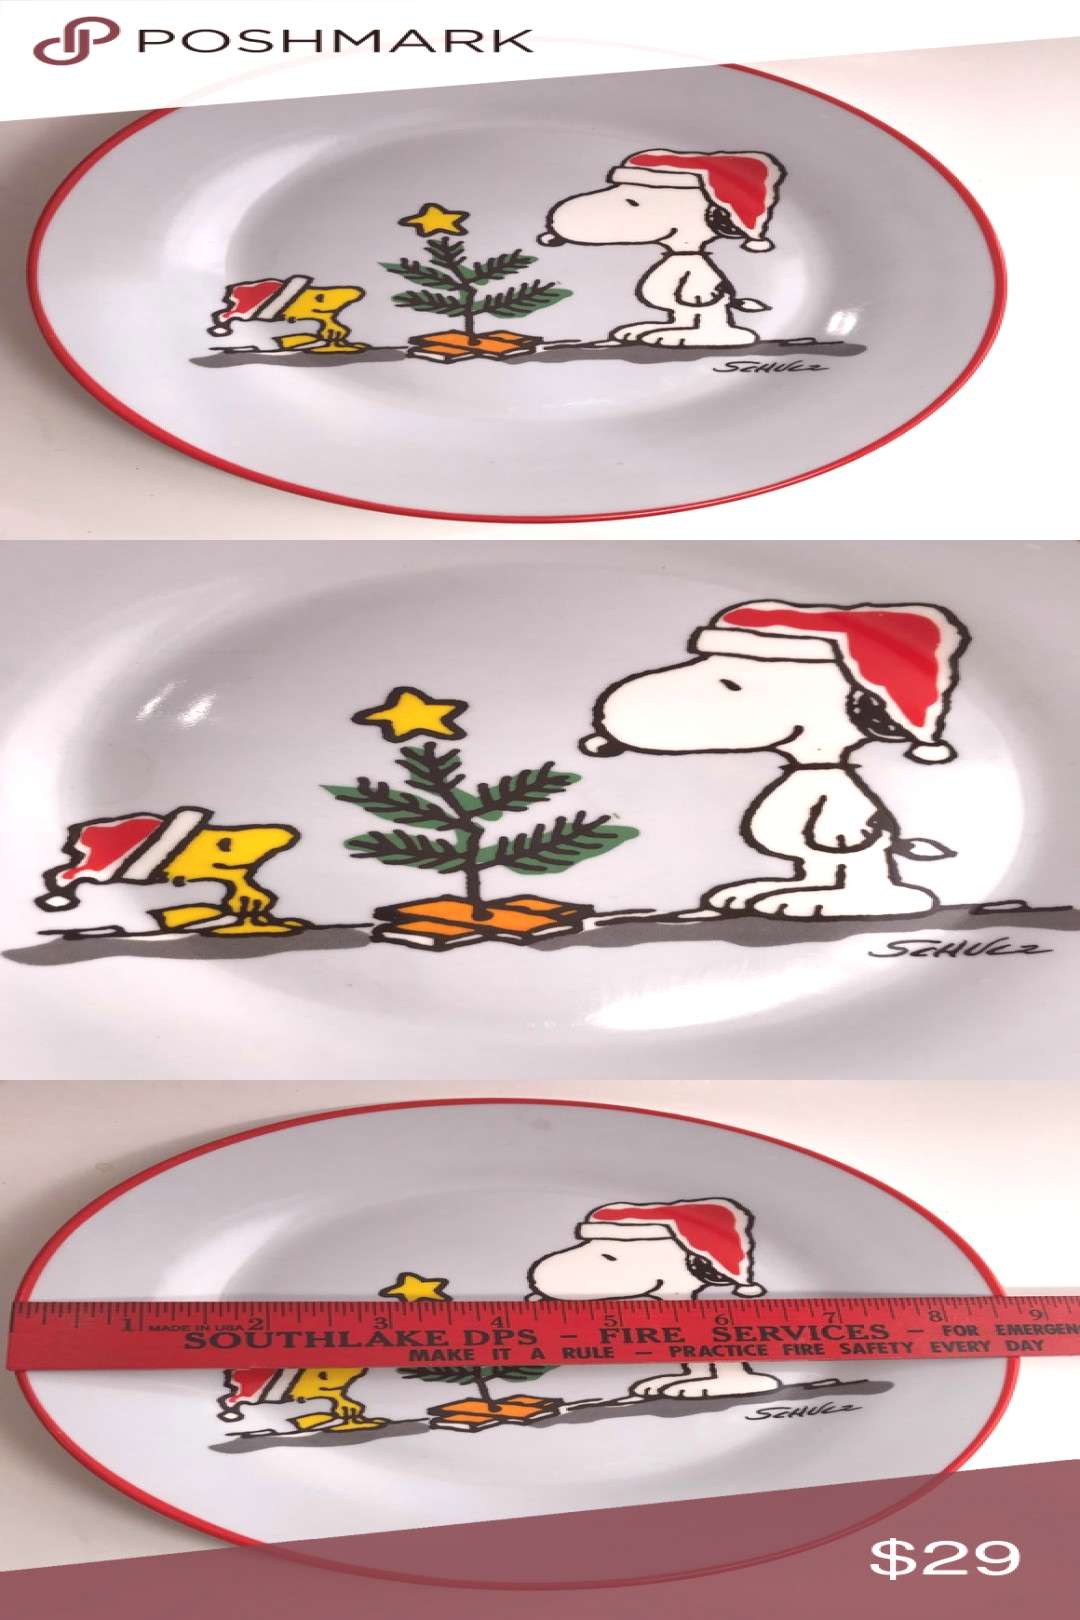 Spotted while shopping on Poshmark: Snoopy Collectors Plate Cartoon Peanuts Worldwide!